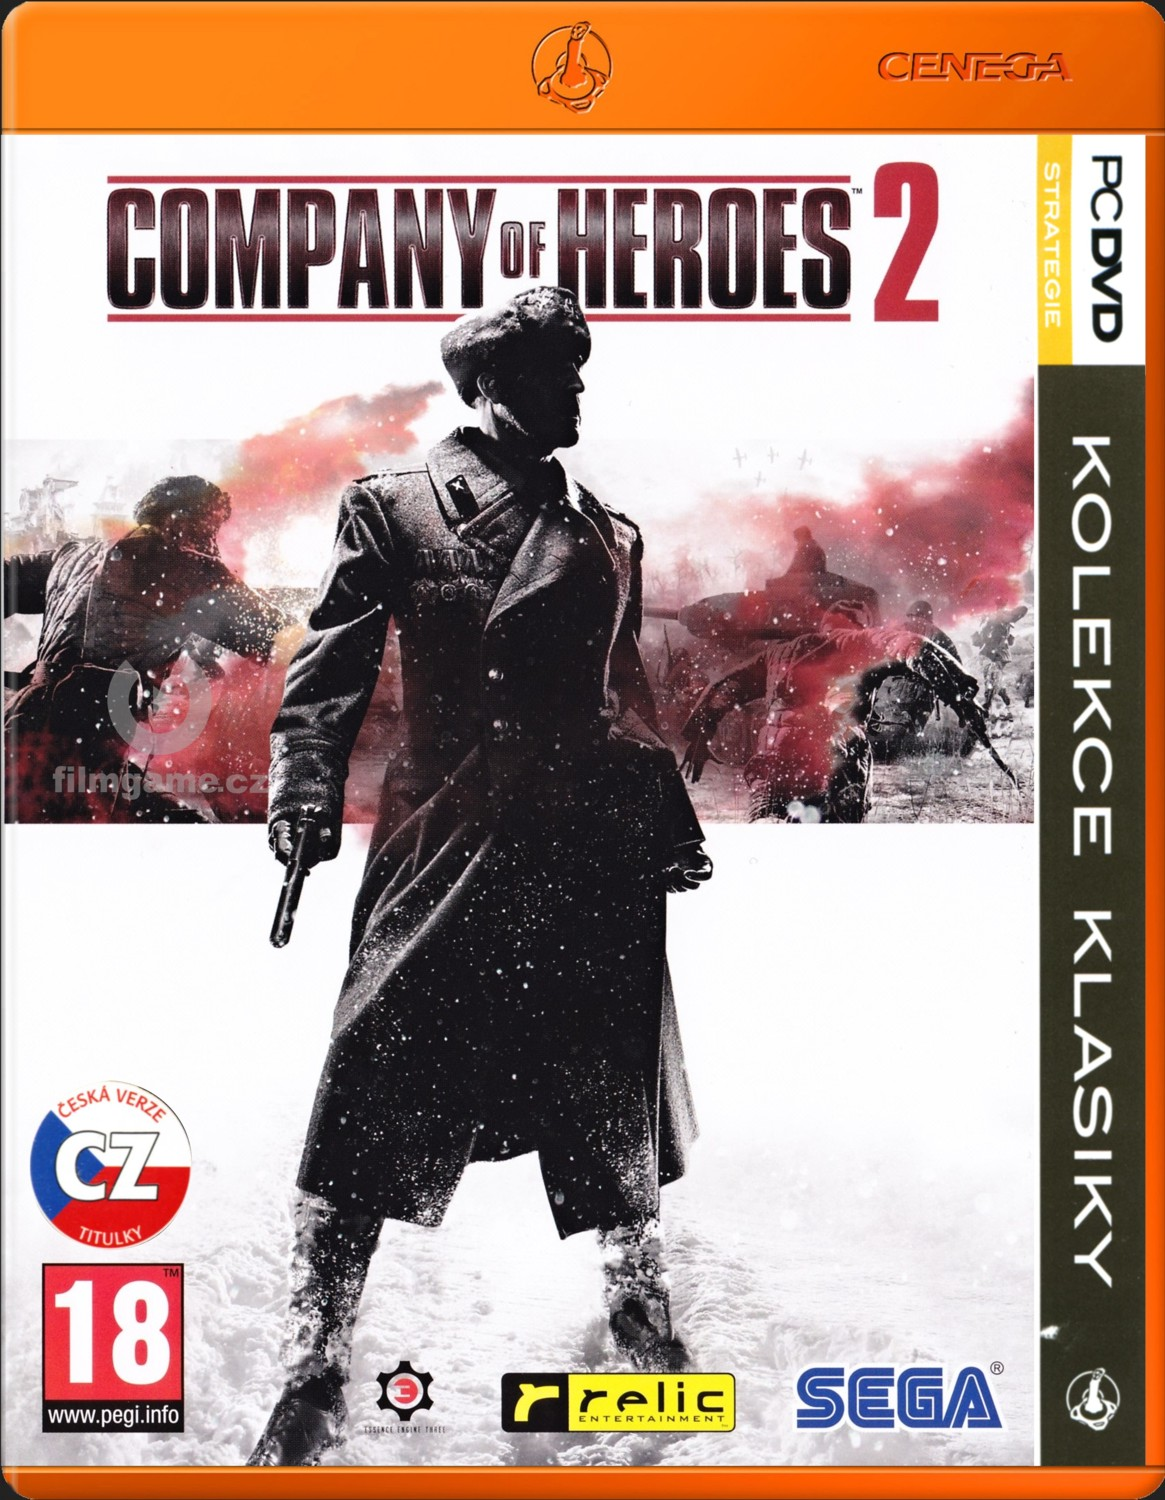 COMPANY OF HEROES 2 CZ - PC